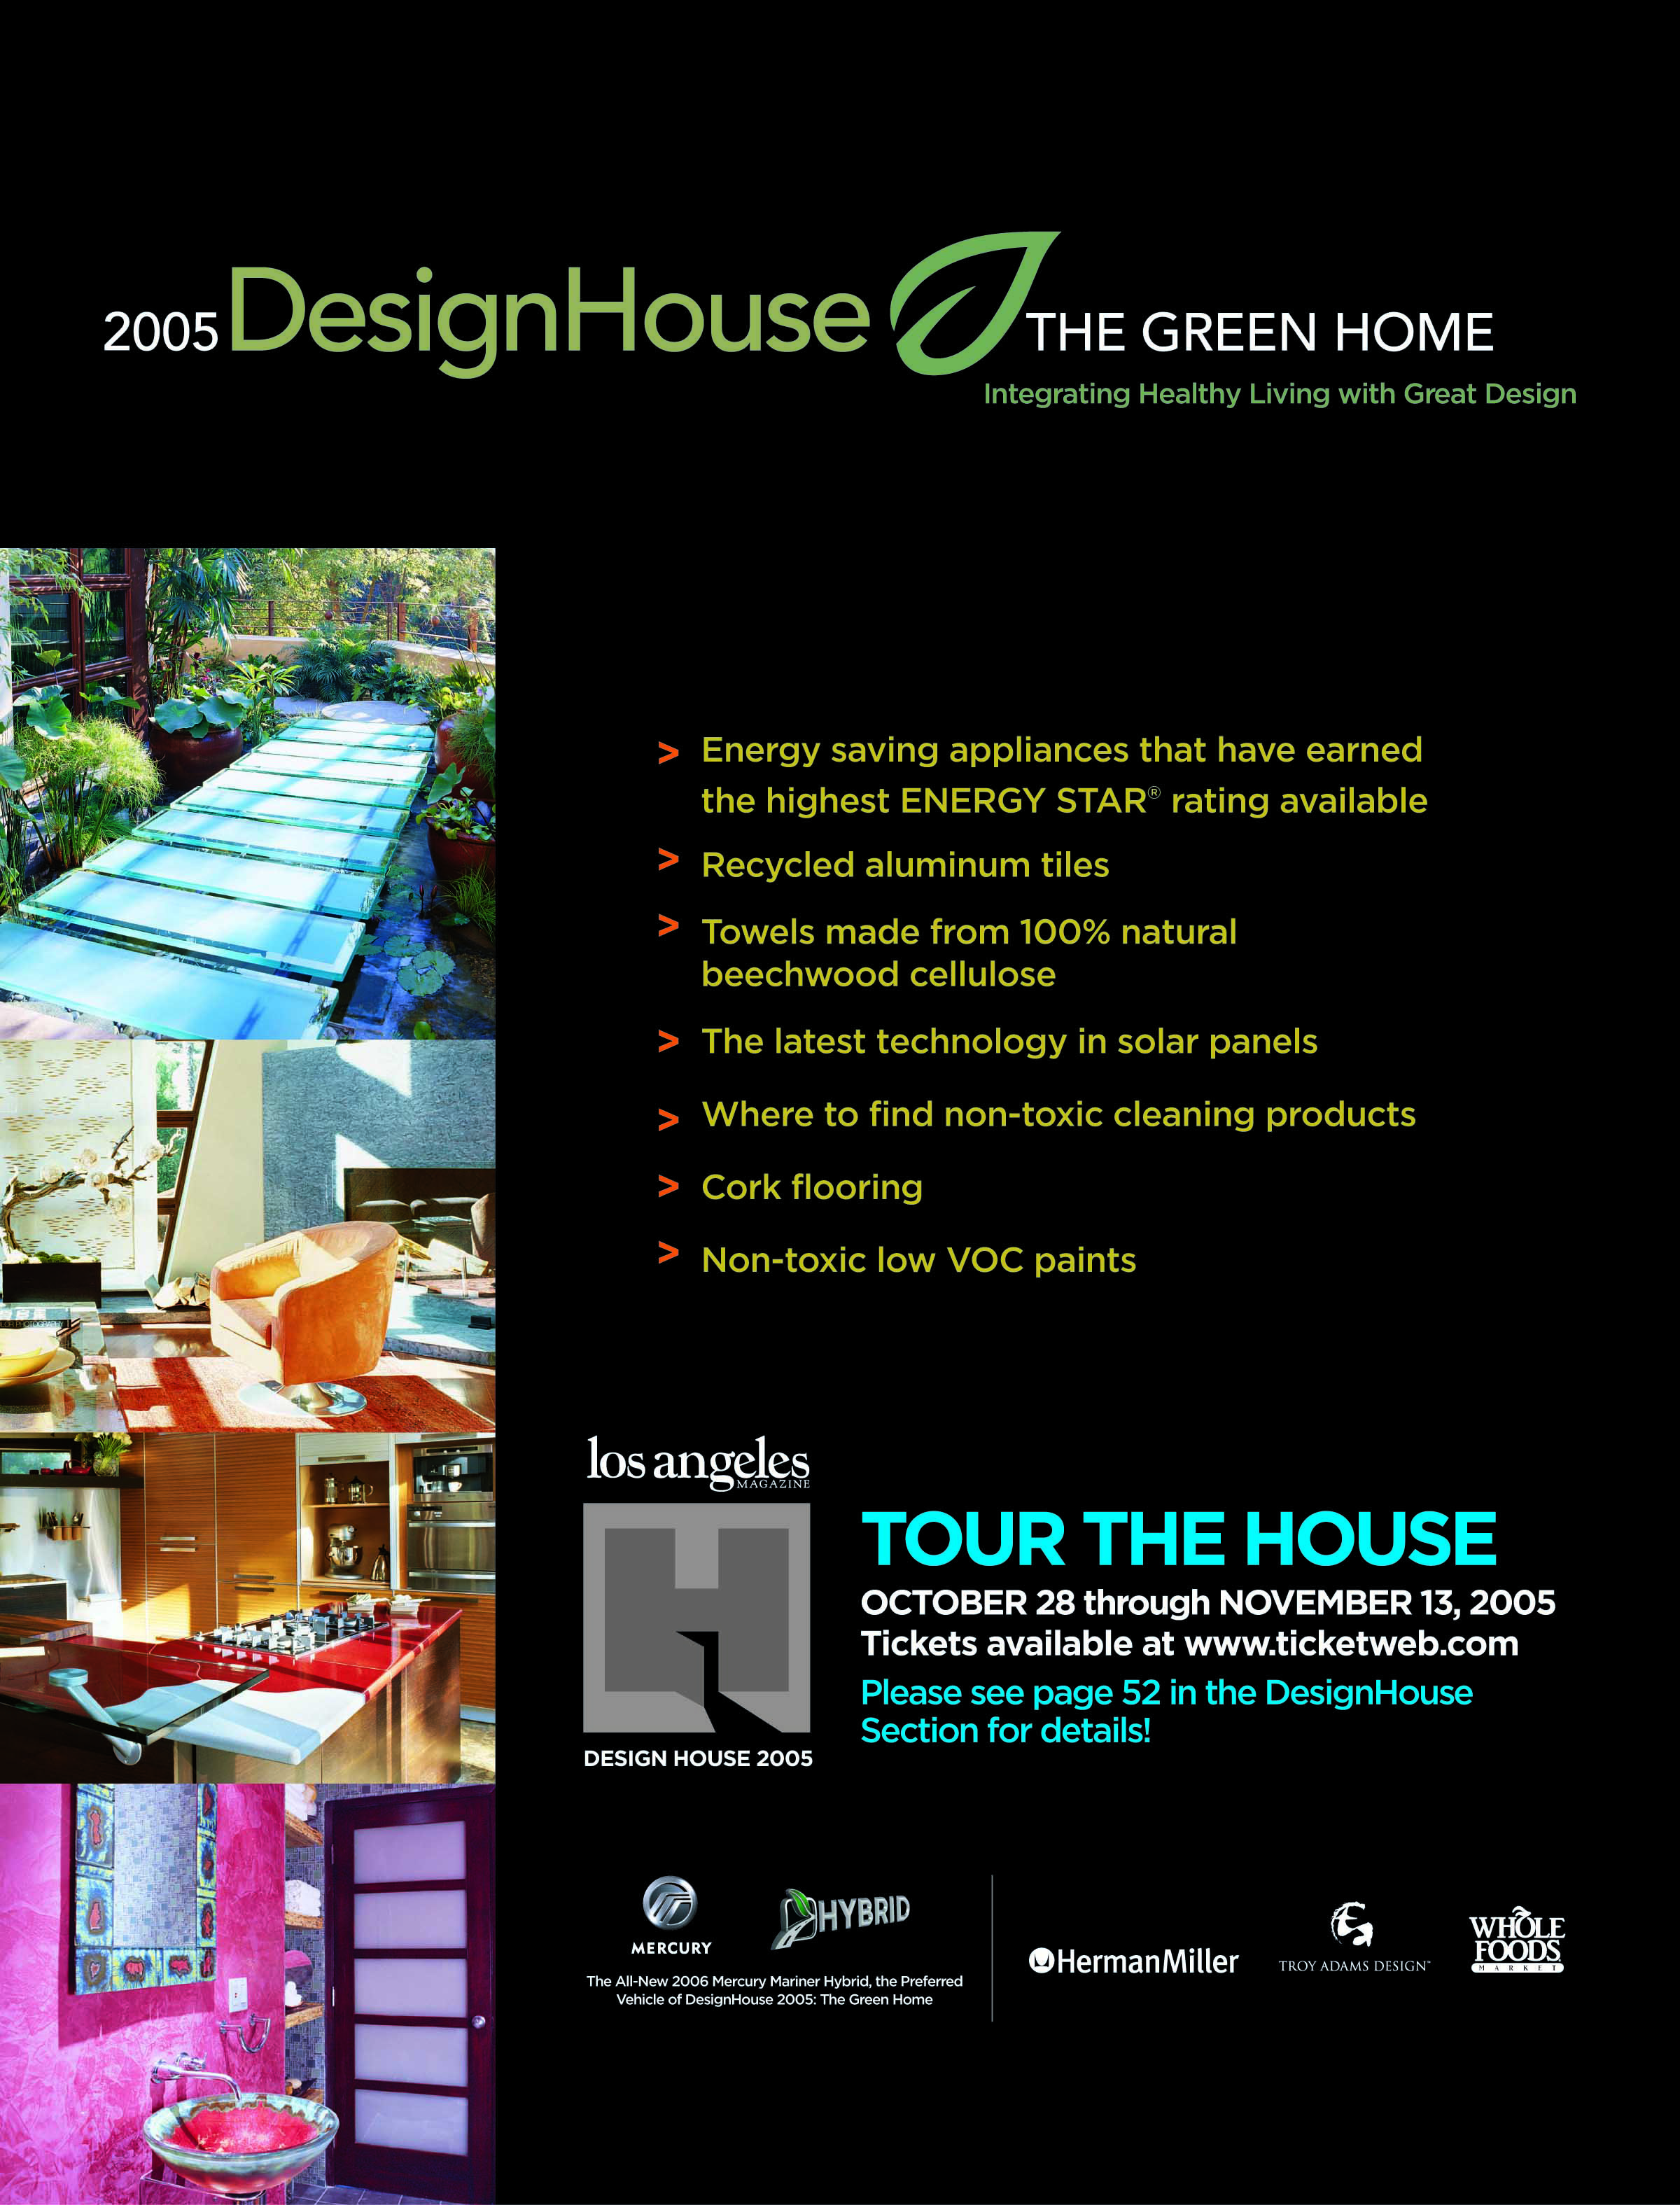 the fabergé egg of green design: james chuda's architecture | huffpost